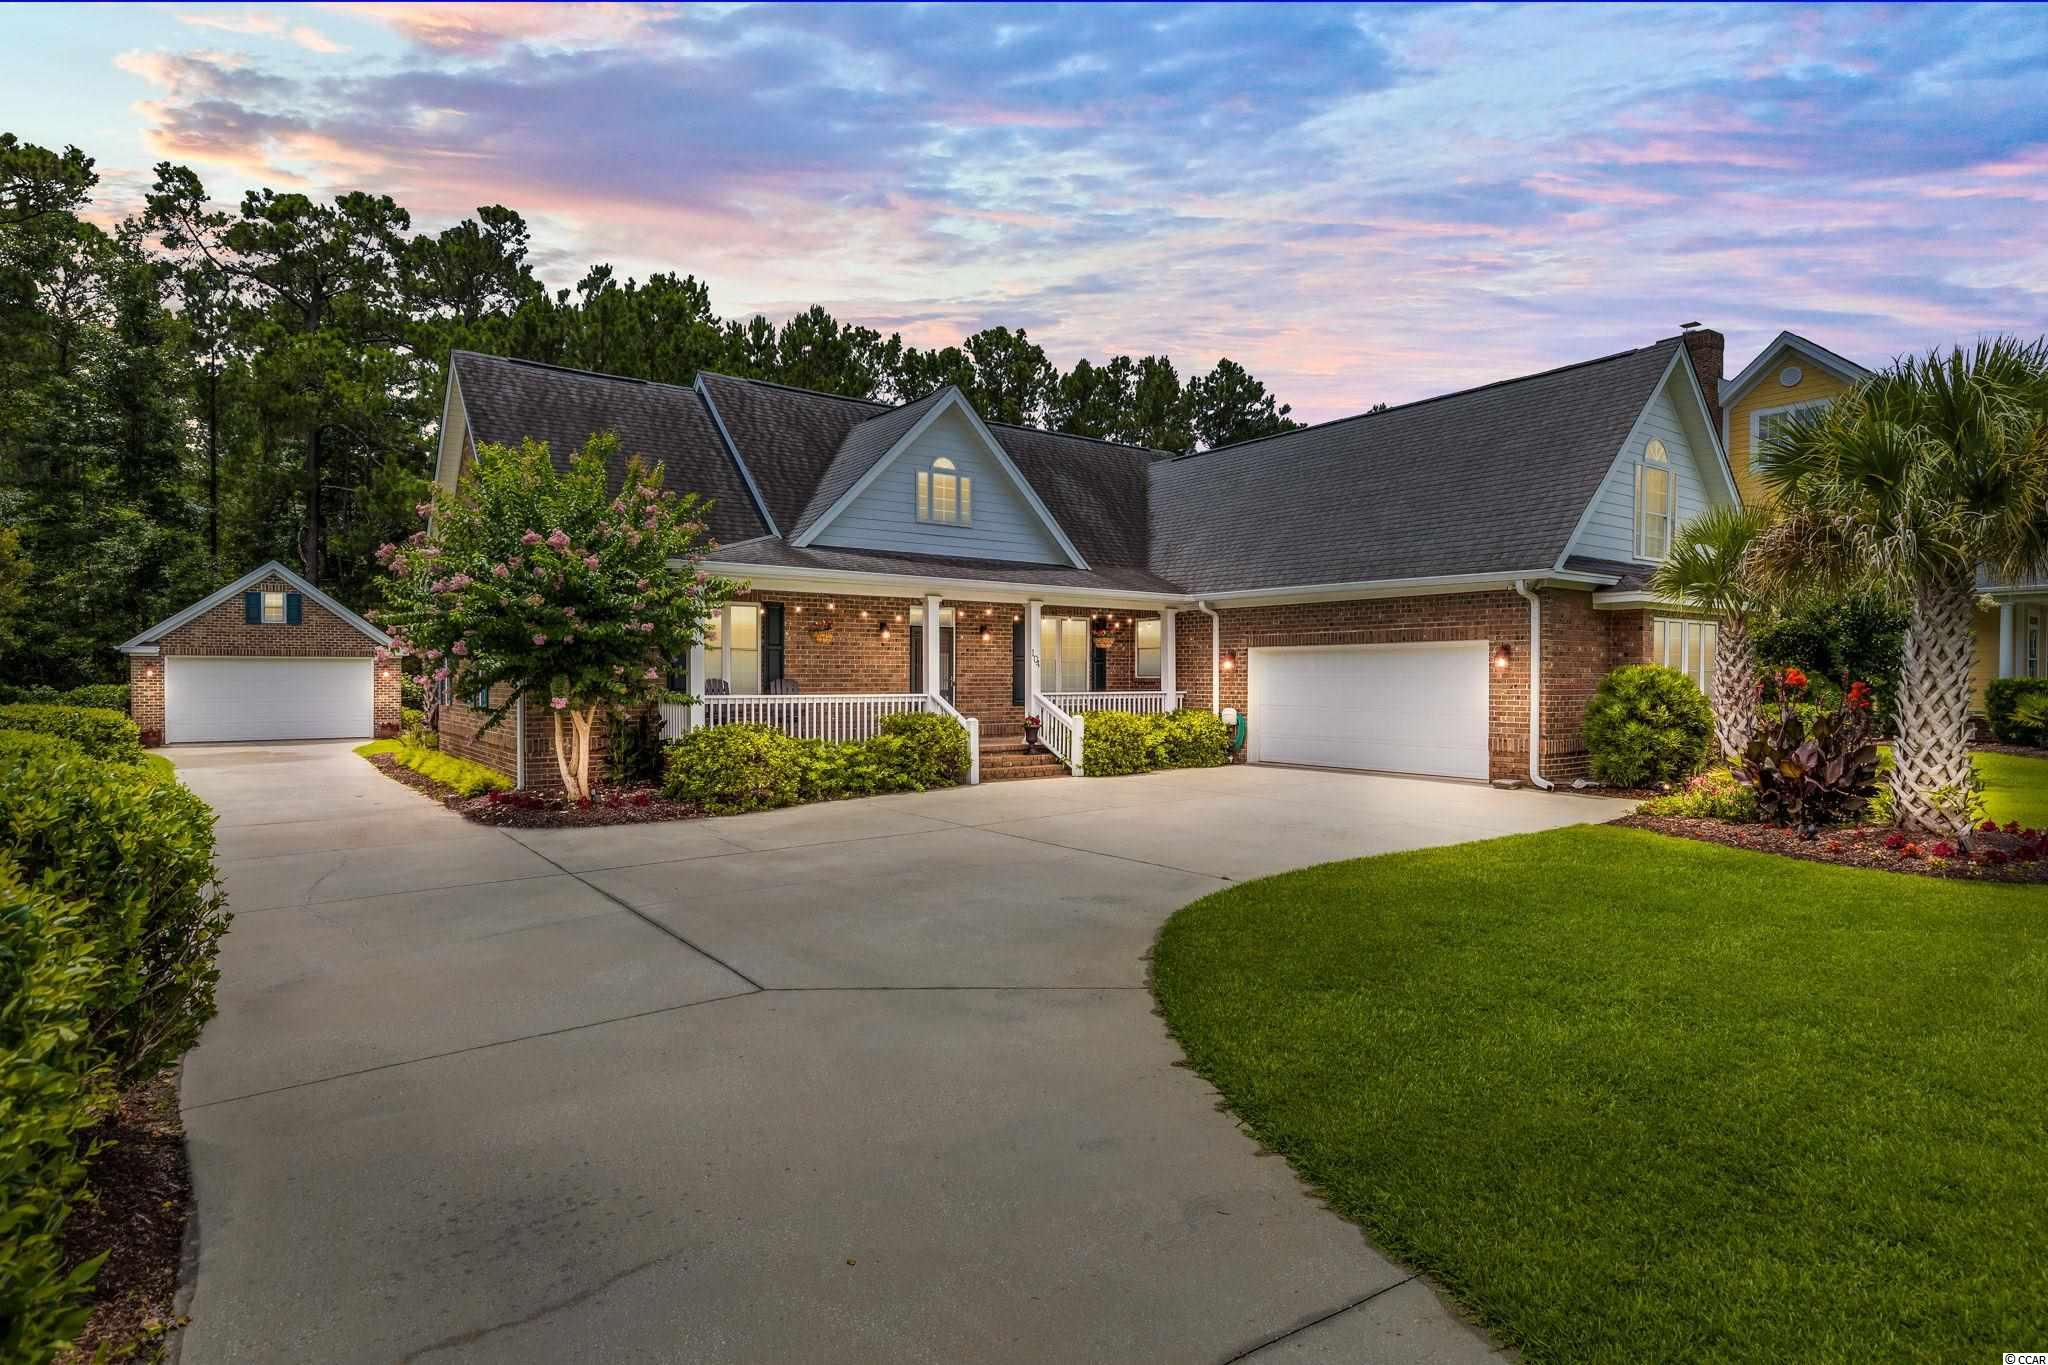 104 Hagar Brown Rd is a charming one story home, with a finished room above the garage, in Murrells Inlet. With four bedrooms and three full bathrooms, this home offers more than 2300 square feet of living space. This well maintained home showcases a large kitchen area overlooking the home's family room and dining area. The home also features vaulted ceilings, wood floors, and granite countertops, as well as an attached two car garage and detached two car garage. The main level hosts a private master suite and an impressive en suite bathroom with a large walk in closet. Two additional bedrooms and a full bathroom can also be found on the main level. The home's upper level features a spacious bedroom and a full bathroom. Don't miss this great find!